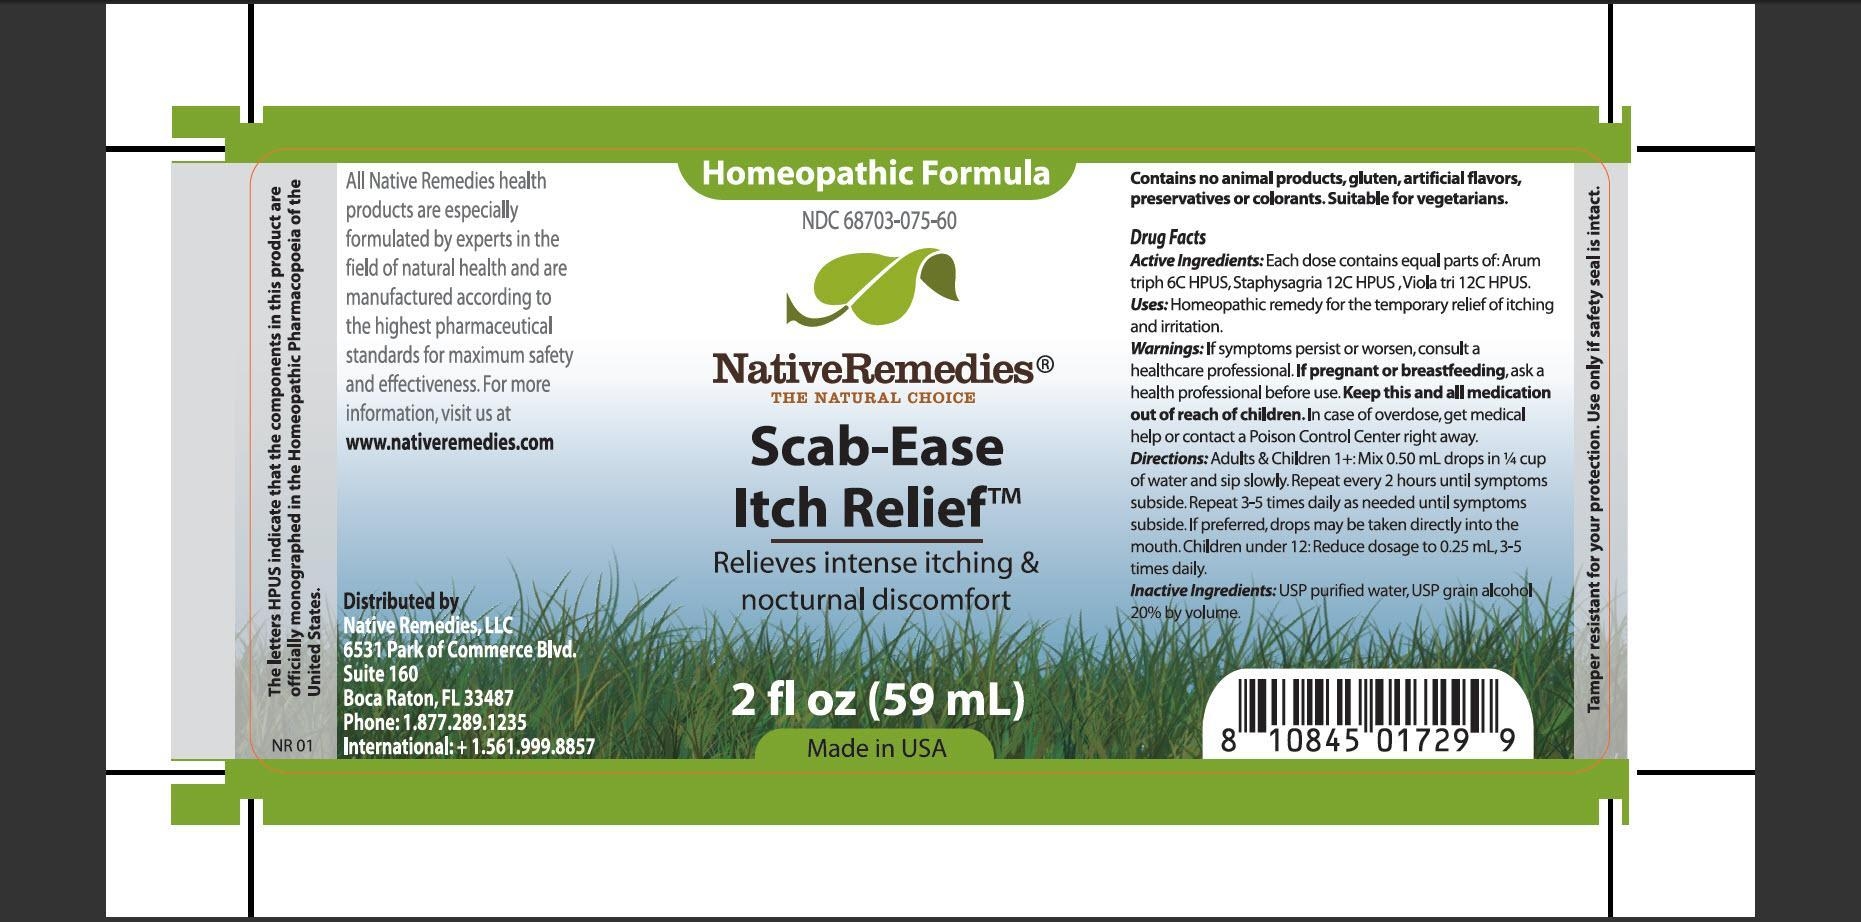 Scab-ease Itch Relief (Arum Triph, Staphysagria, Viola Tri) Tincture [Native Remedies, Llc]